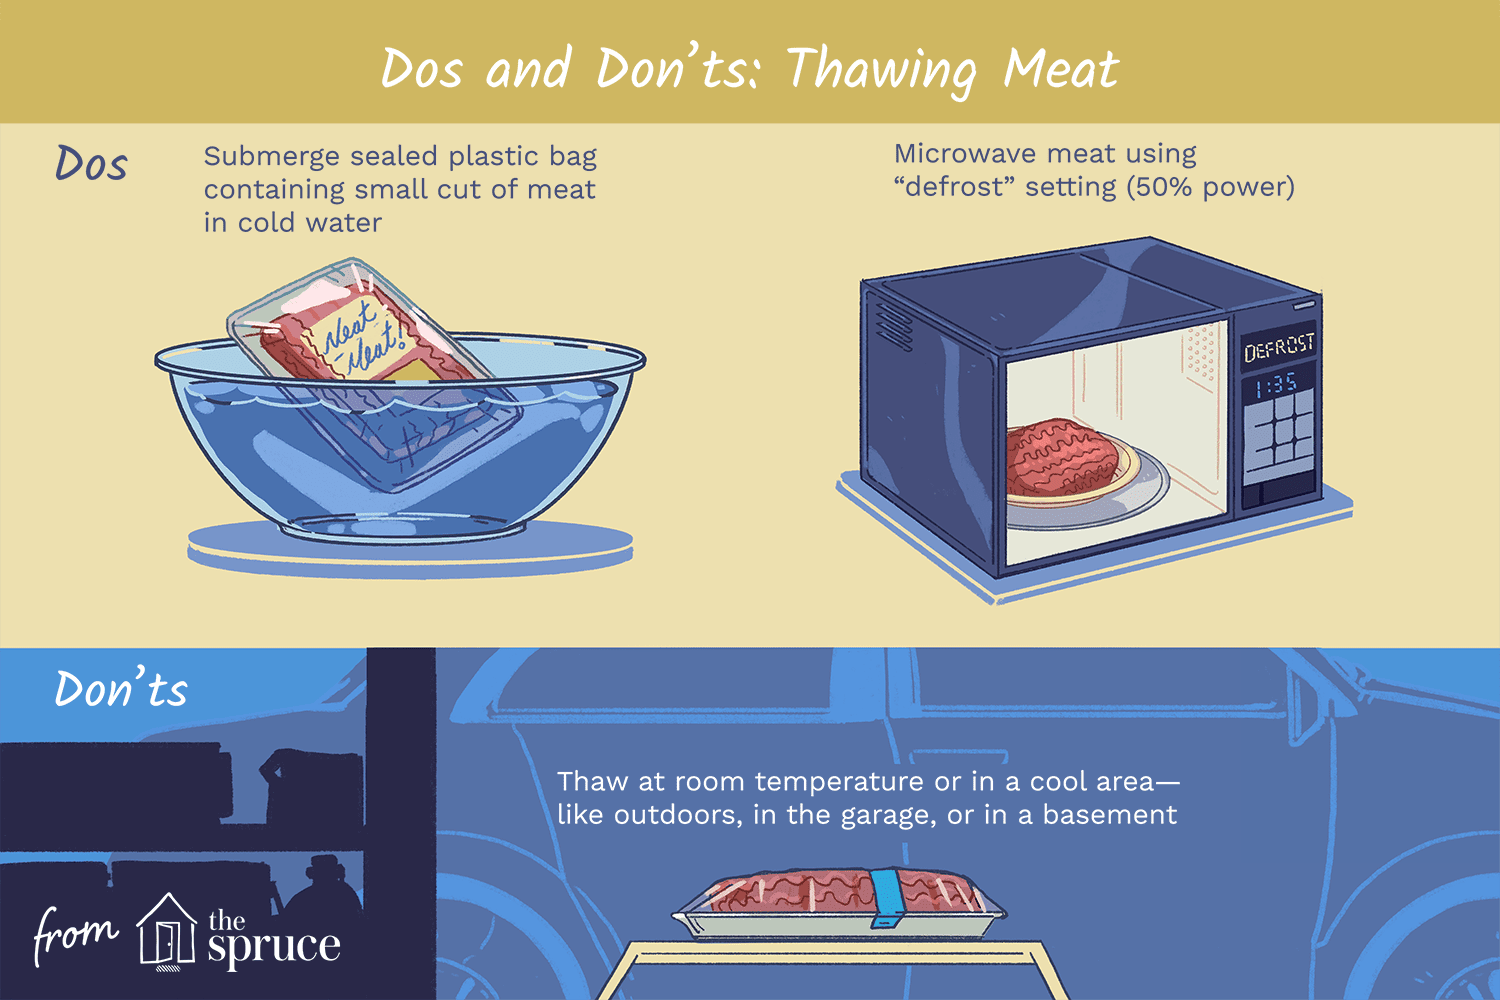 Dos and don'ts of thawing meat